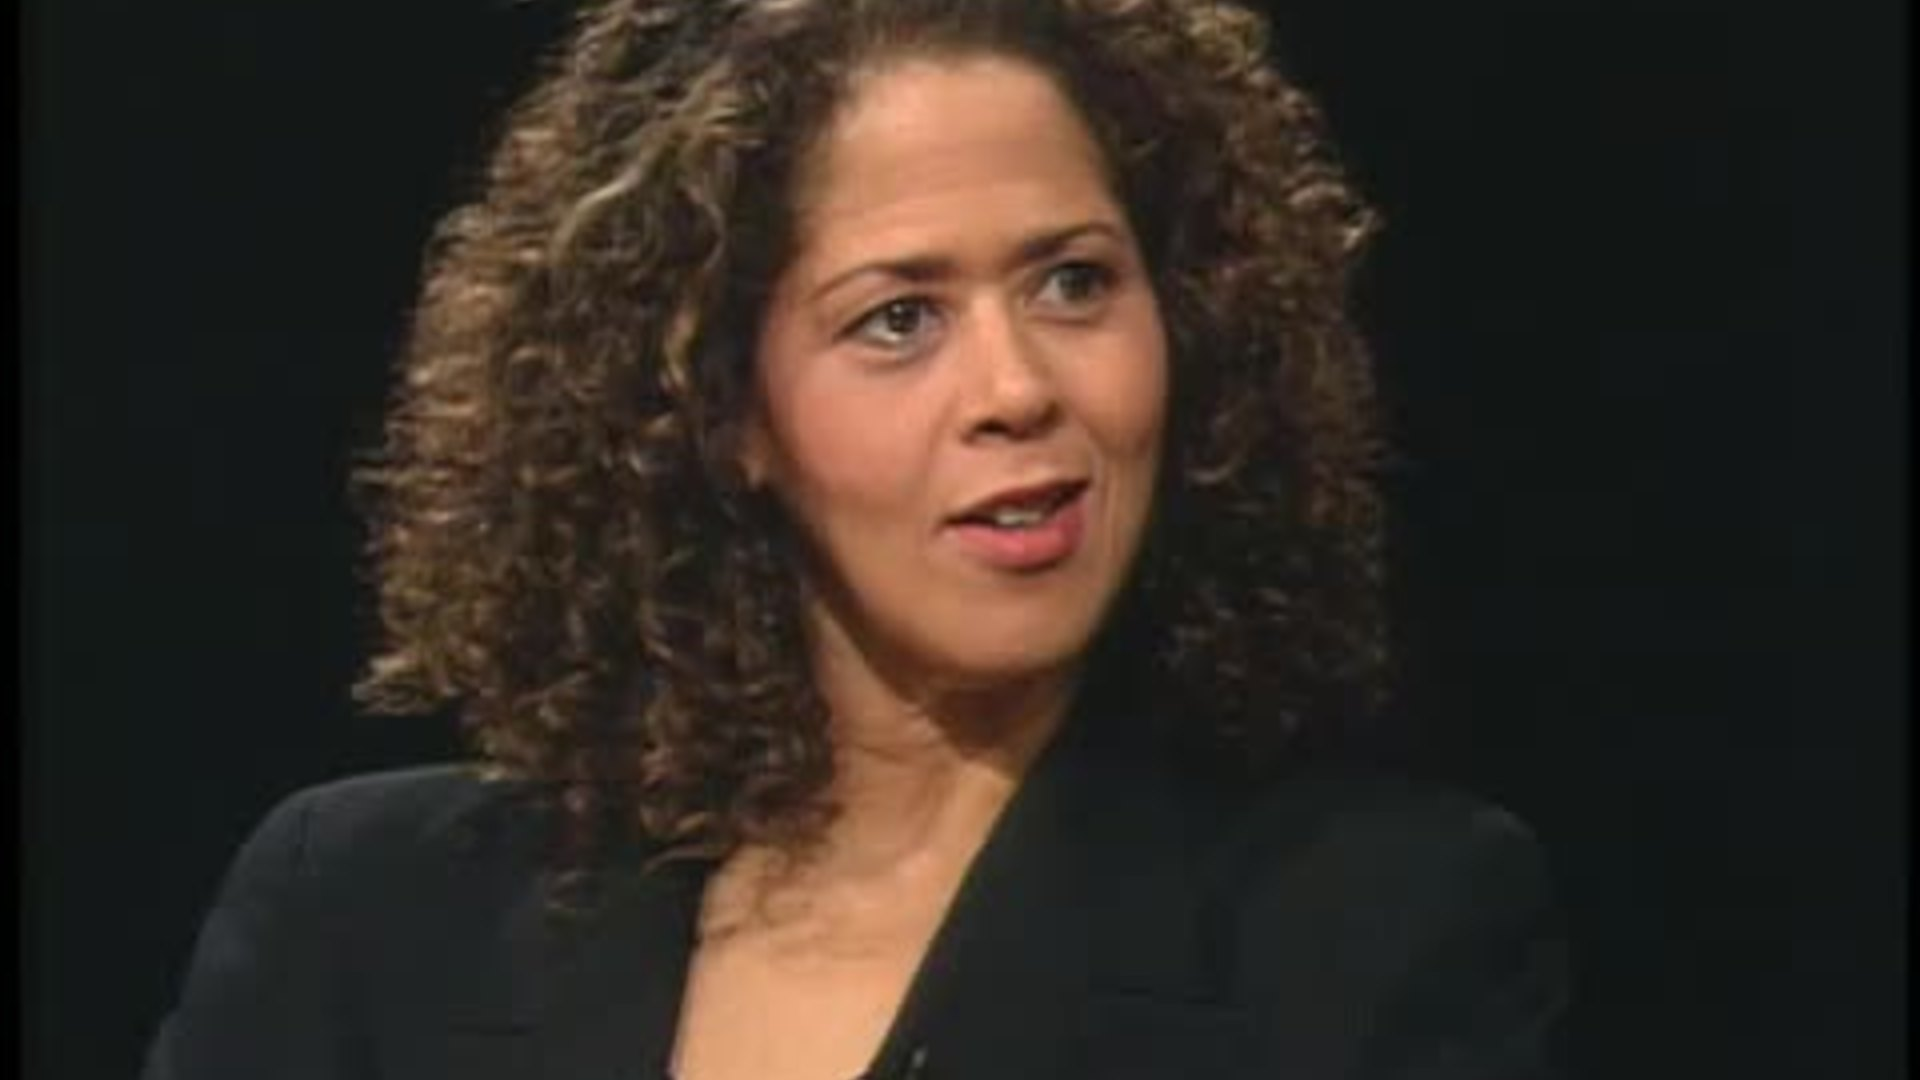 Anna Deavere Smith let me down easy